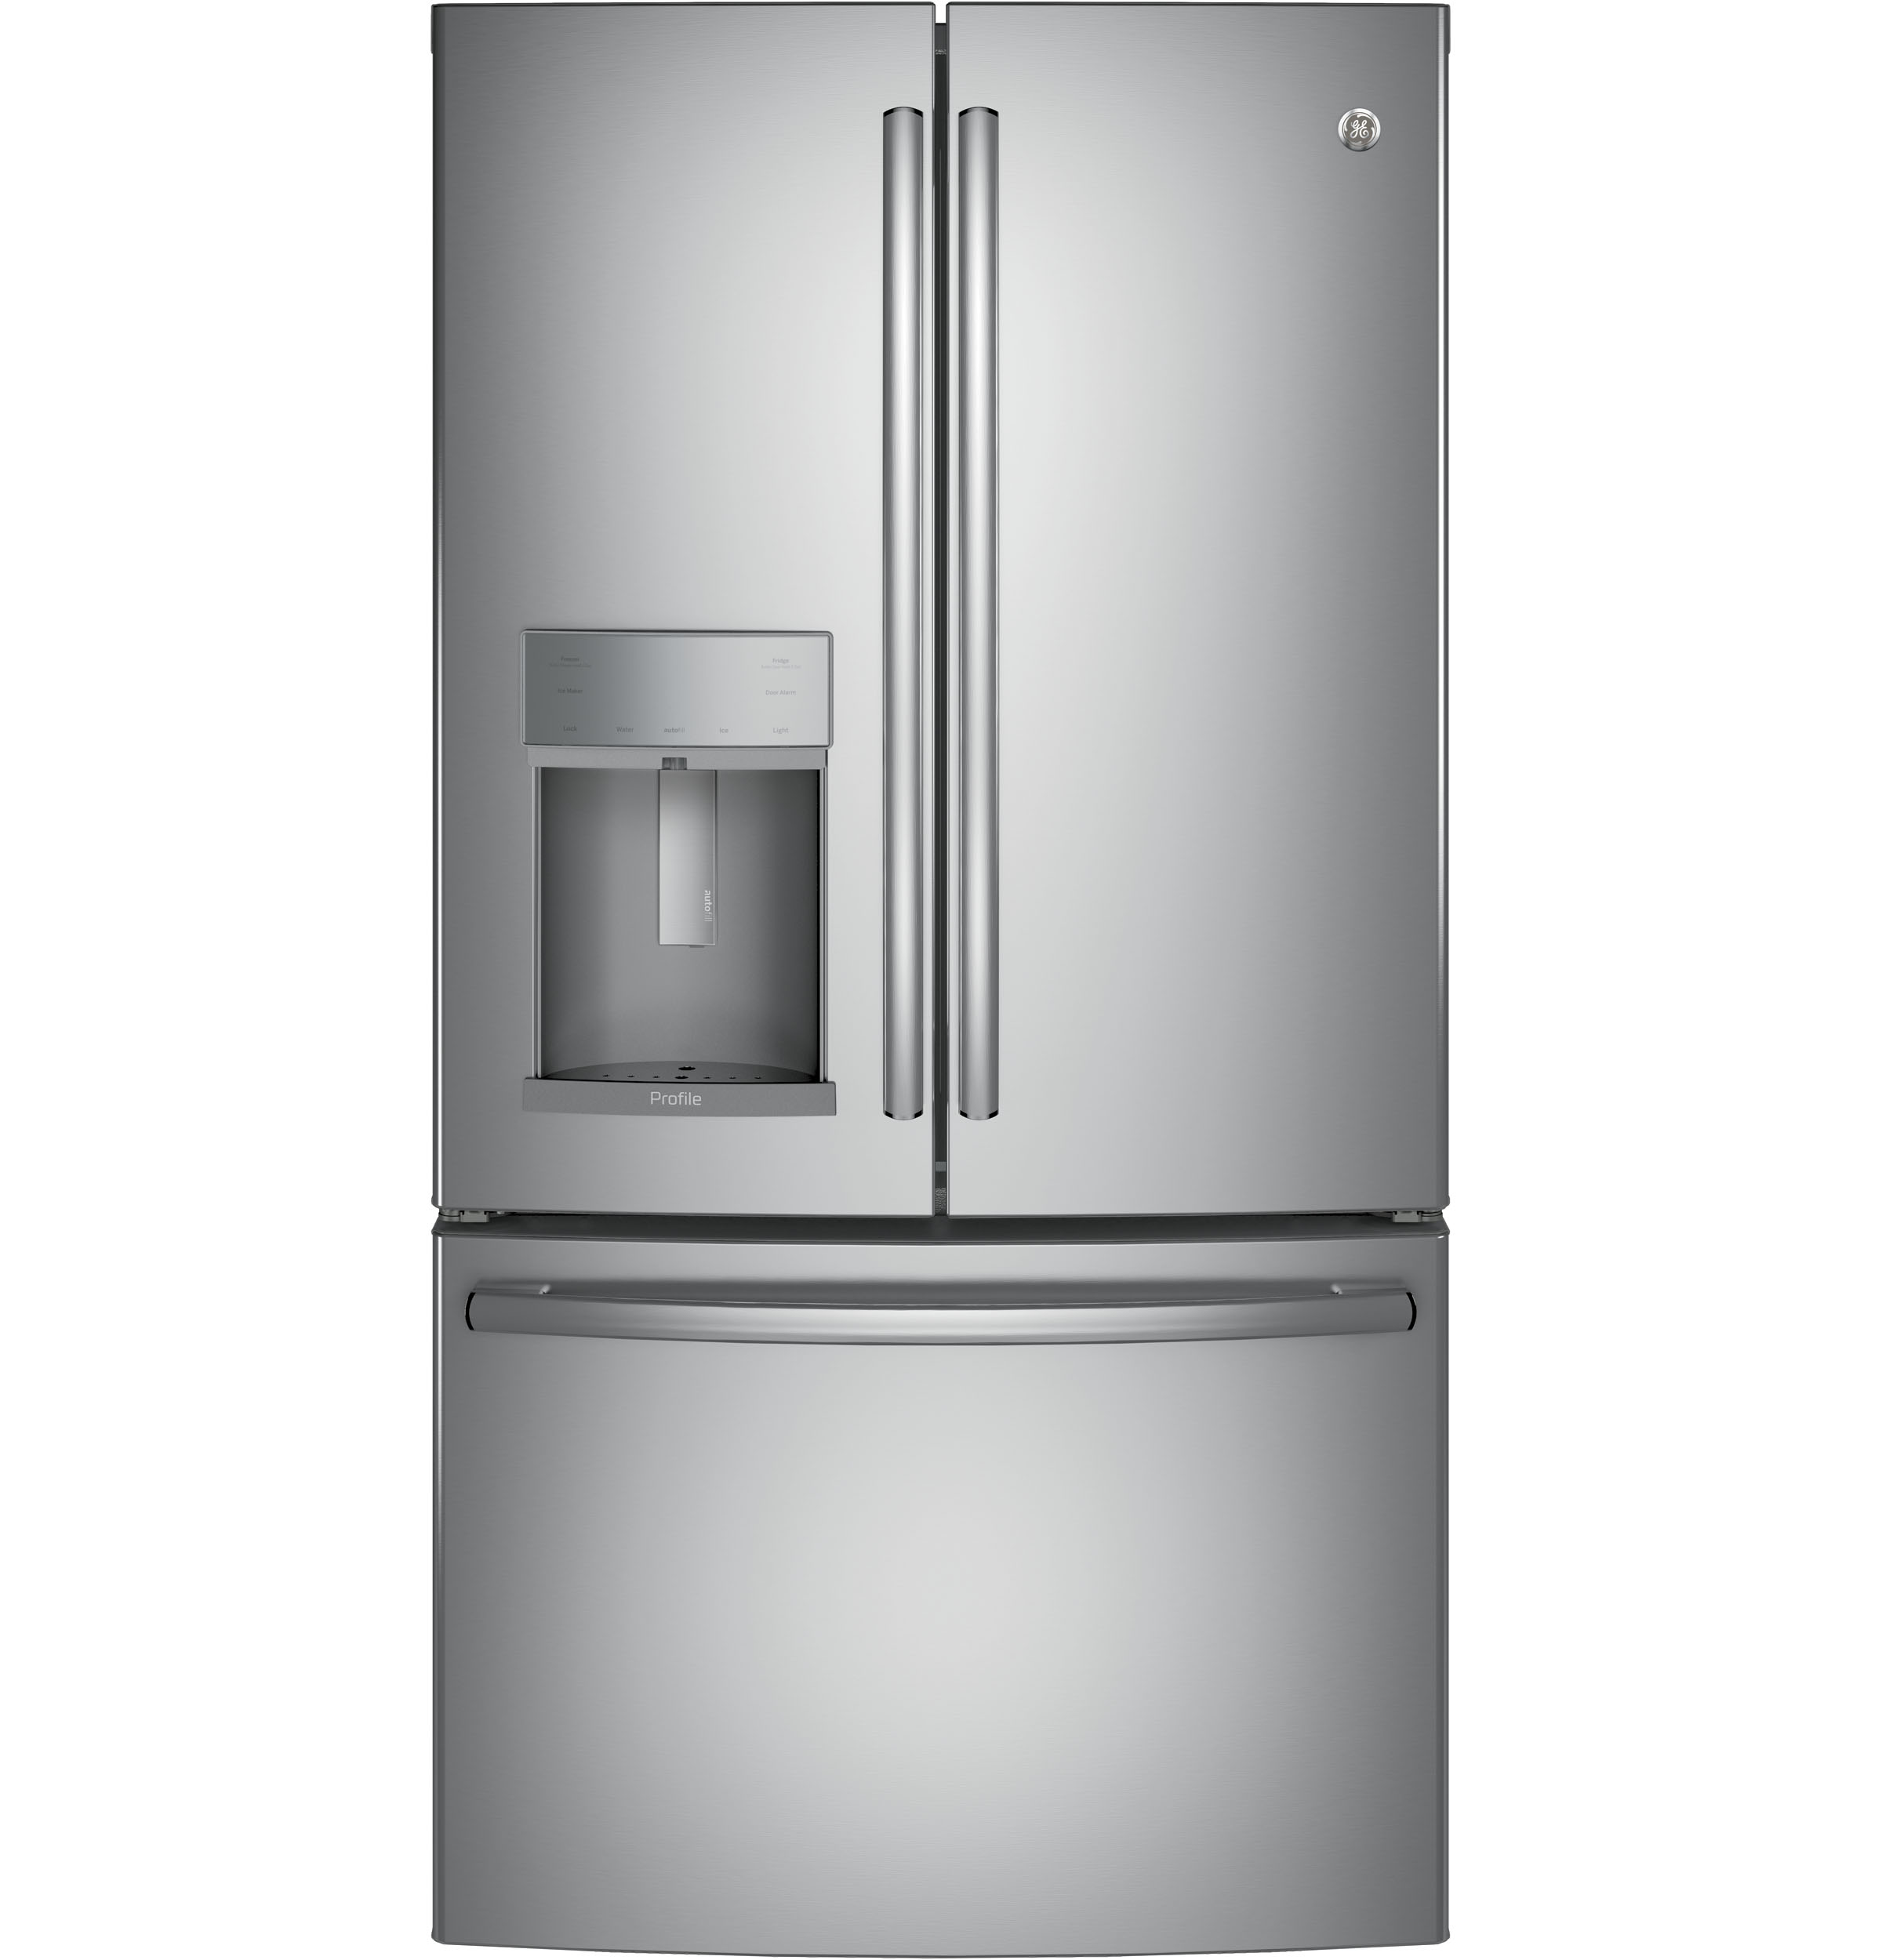 Model: PYE22KSKSS | GE Profile GE Profile™ Series ENERGY STAR® 22.2 Cu. Ft. Counter-Depth French-Door Refrigerator with Hands-Free AutoFill